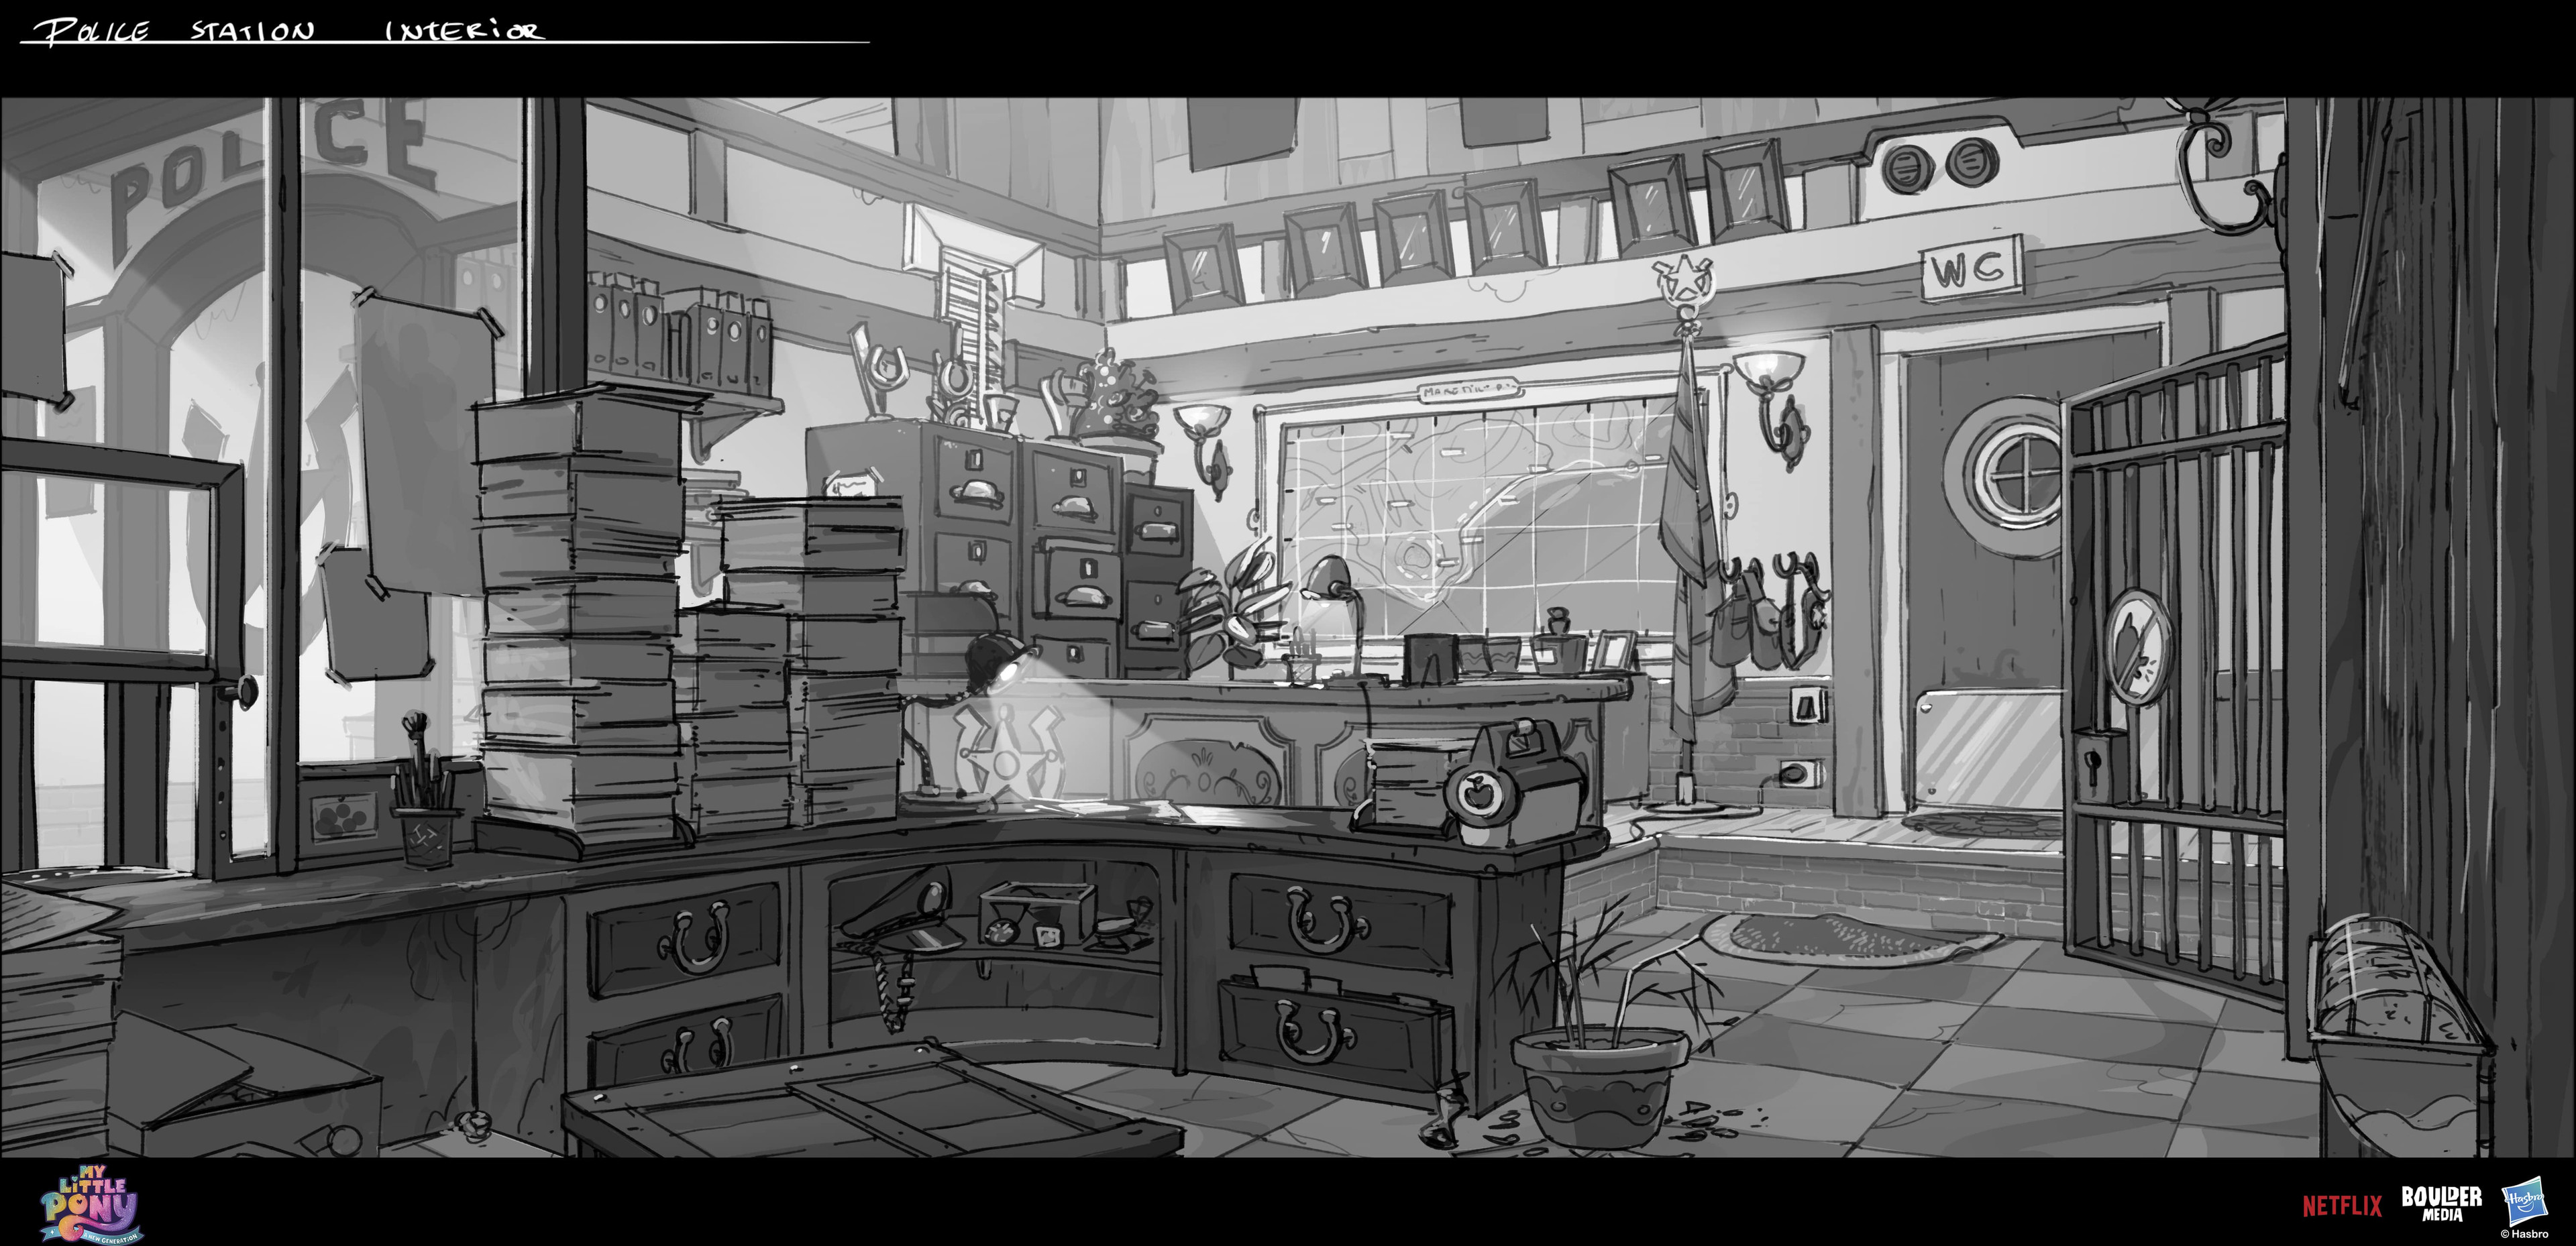 Early sheriff station, Sprout´s desk has some easter eggs for later in the movie :)